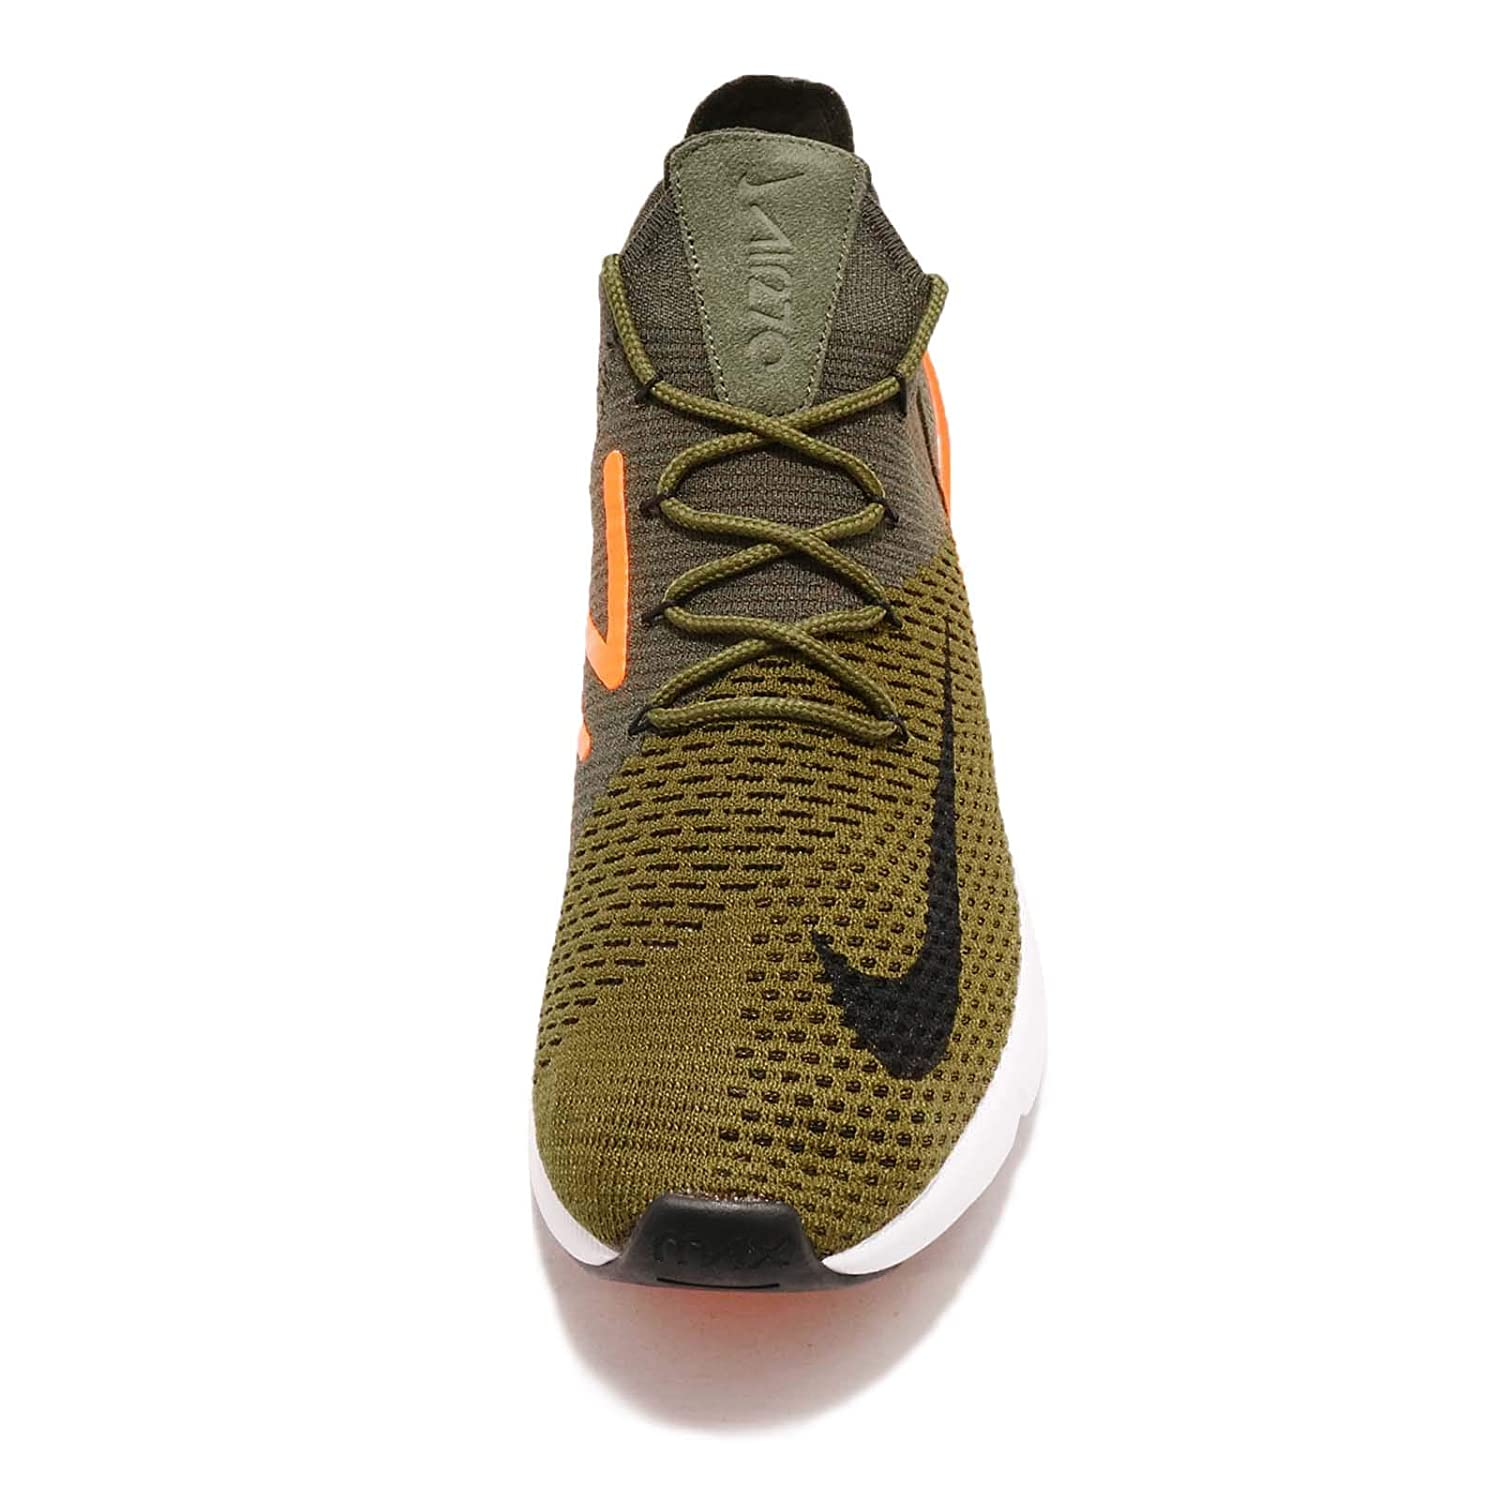 Man/Woman Nike Men's Men's Men's Air Max 270 Flyknit Nylon Basketball Shoes Excellent craft Upper material Elegant and stable packaging VW7540 642c57